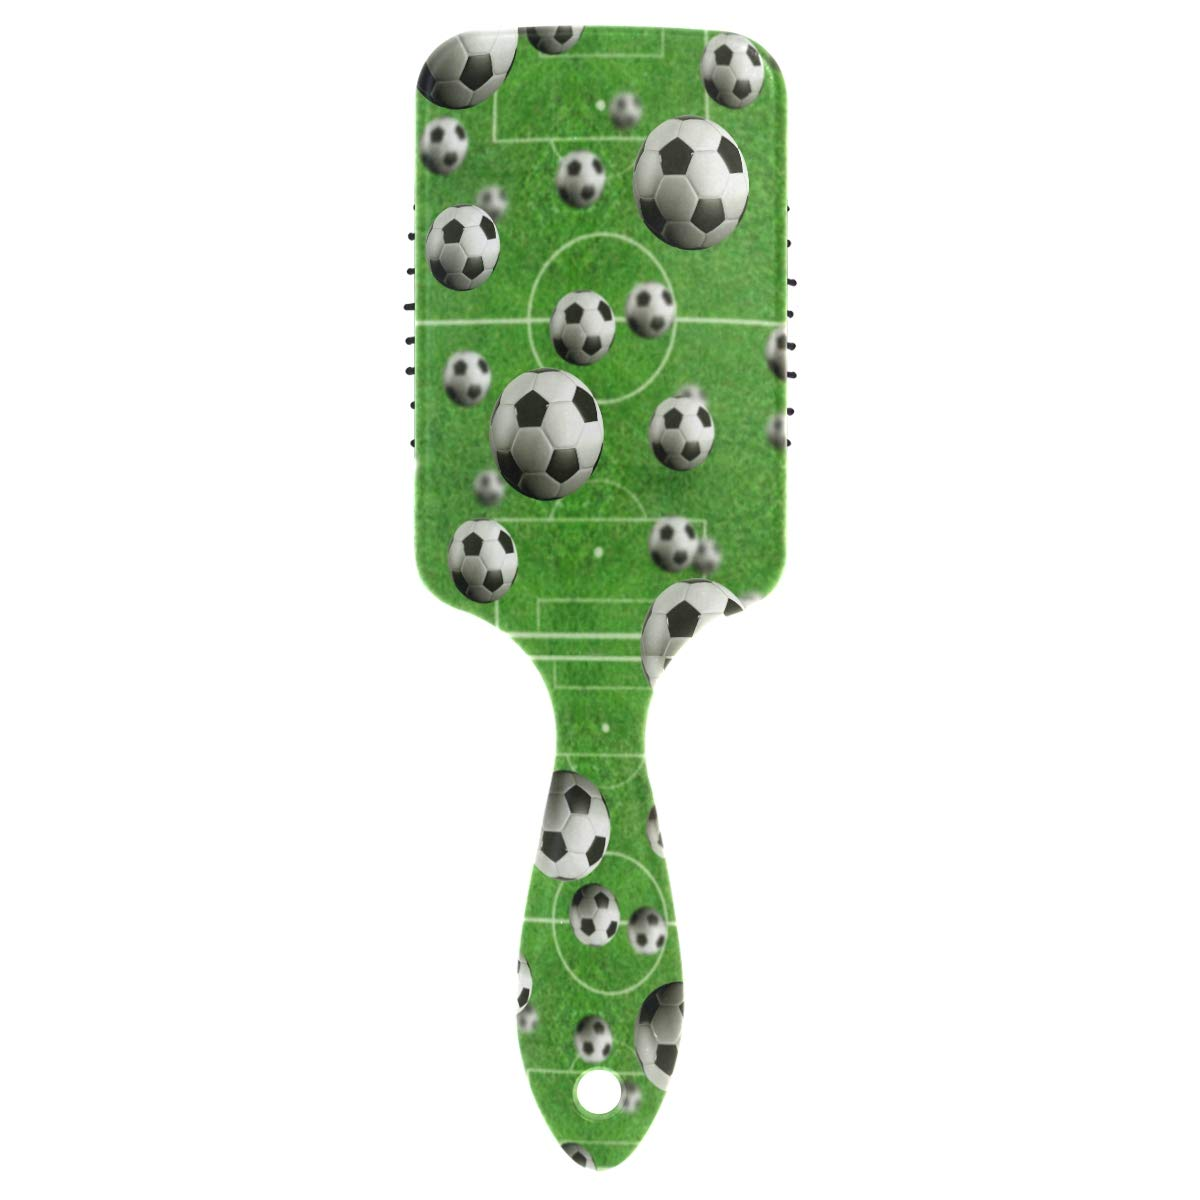 Amazon.com : Naanle Sport Football Paddle Hair Brush with ...